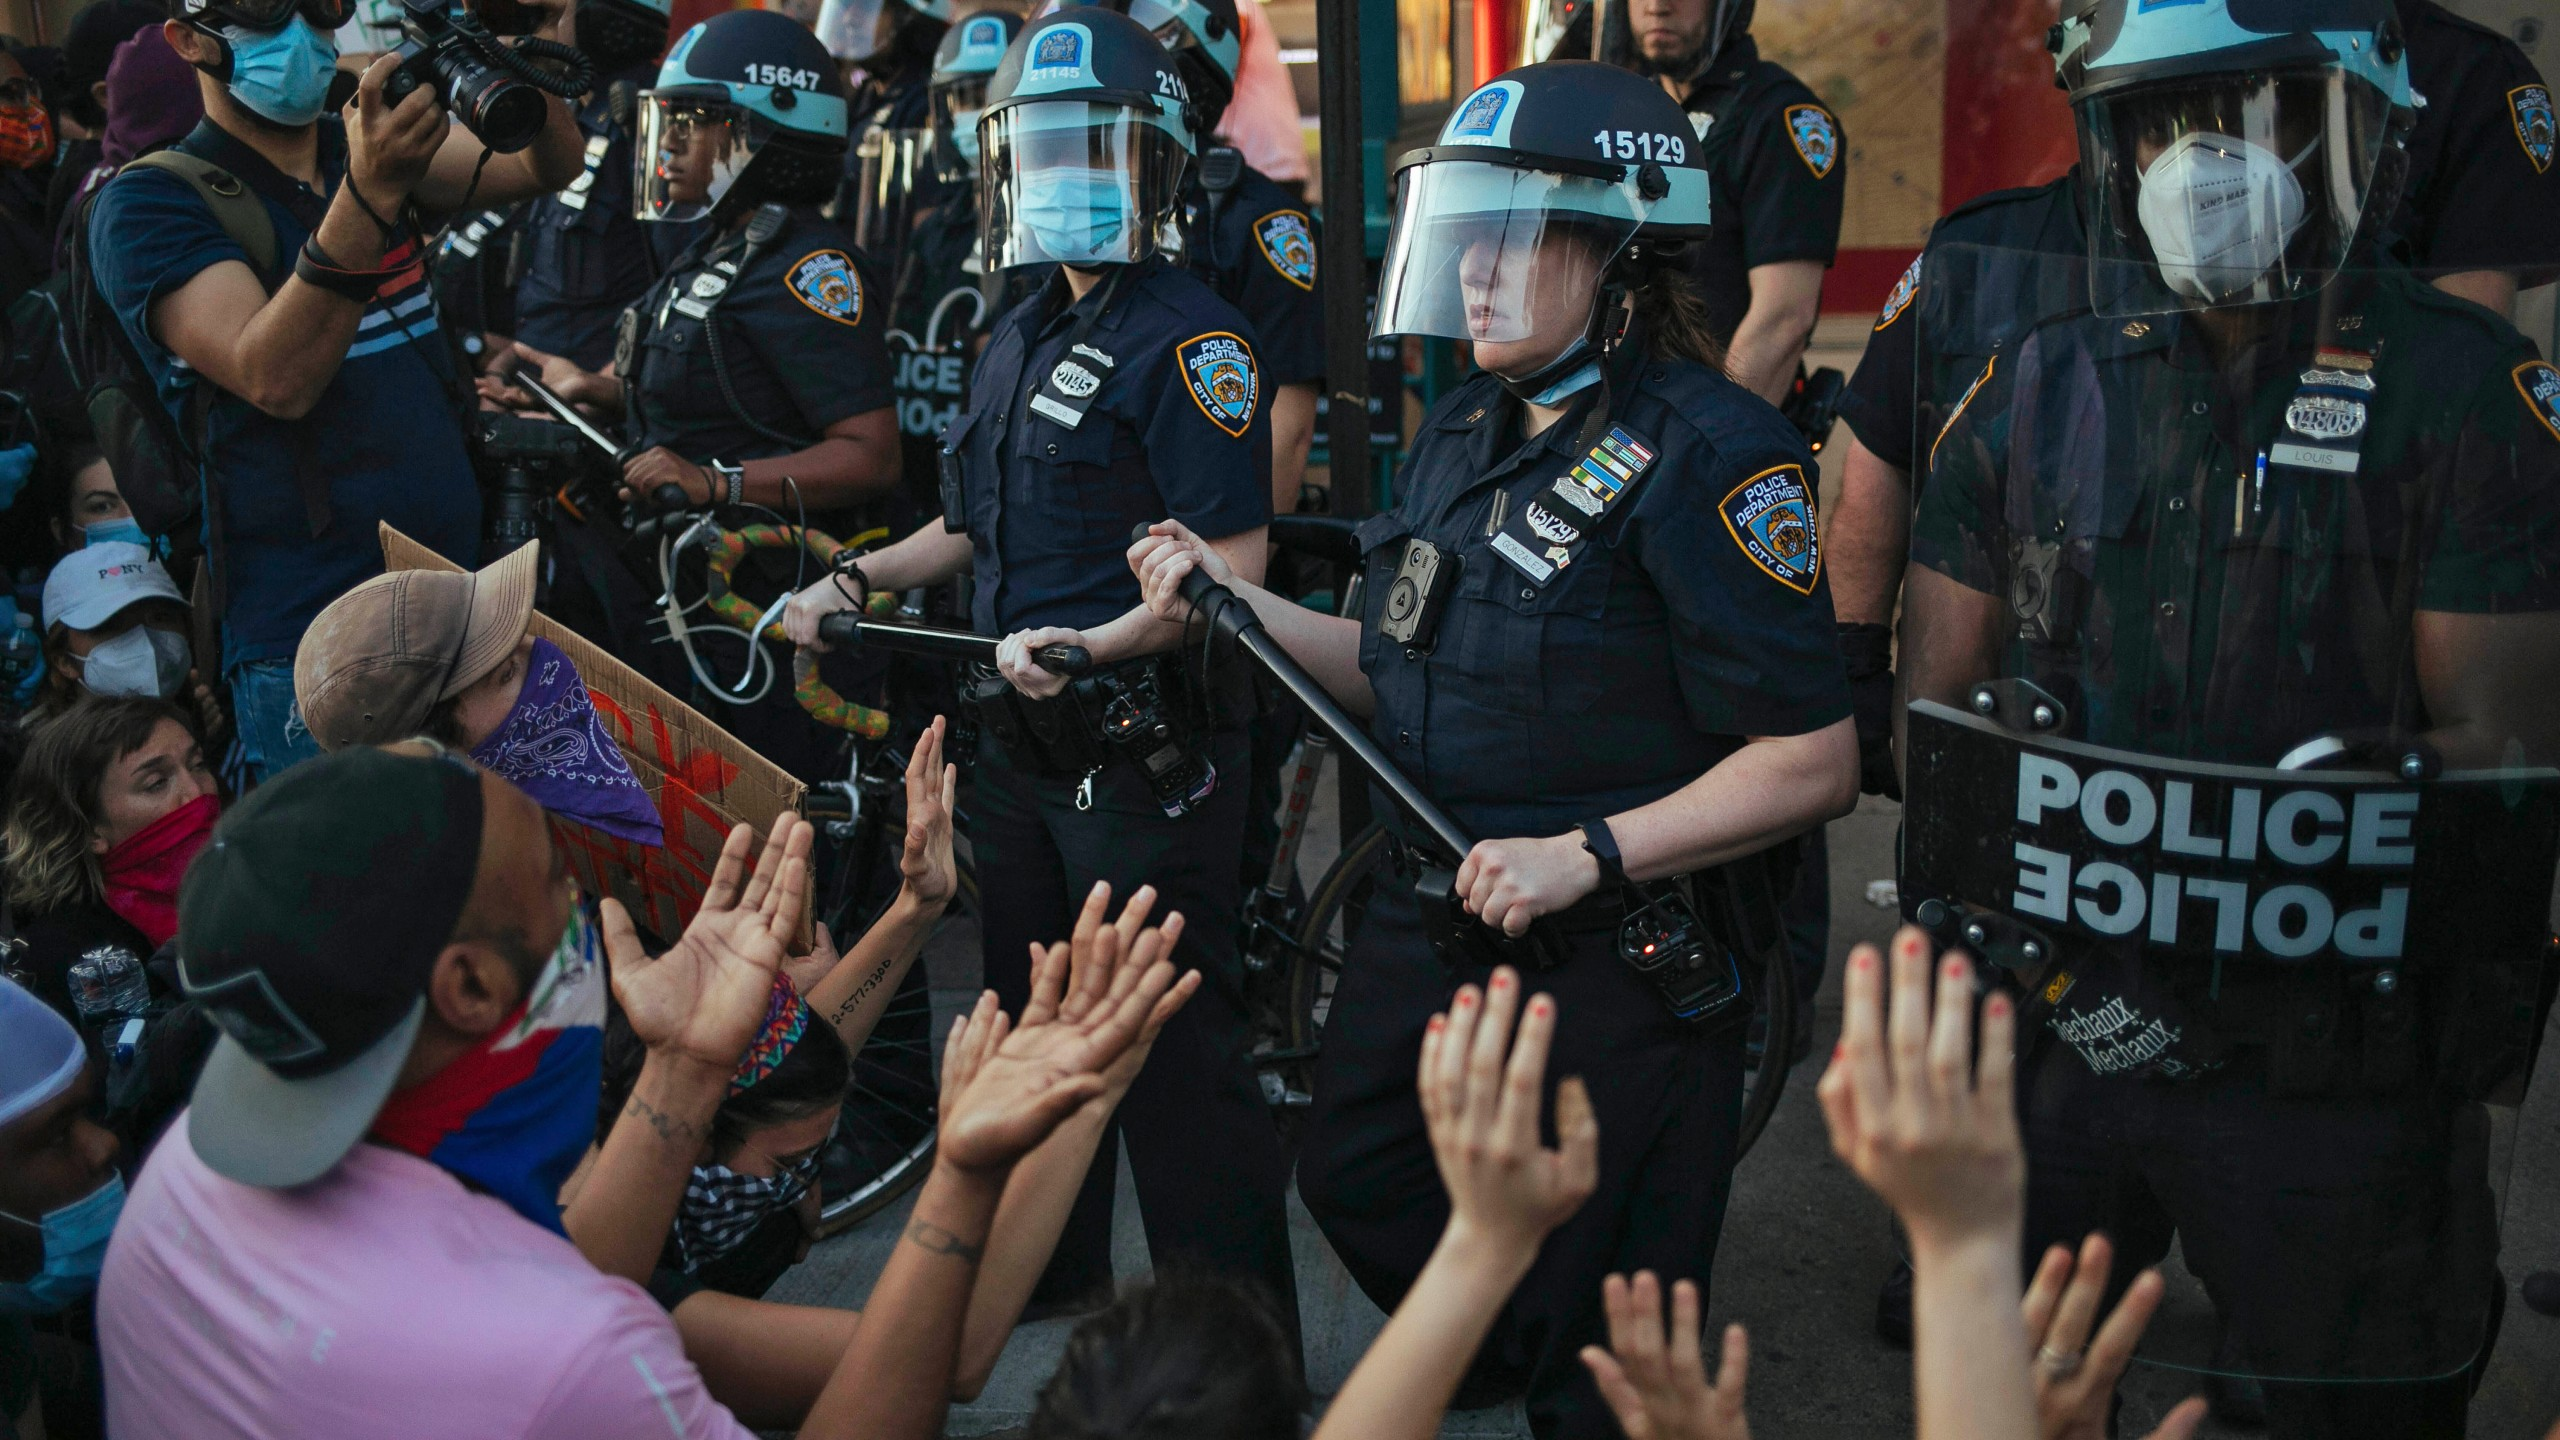 FILE - This May 31, 2020 file photo shows New York City Police facing off with activists during a protest march in the Bedford-Stuyvesant section of the Brooklyn borough of New York. New York's attorney general sued the New York Police Department on Thursday, Jan. 14, 2021 alleging the rough treatment of protesters last spring in the wake of George Floyd's killing was part of a longstanding pattern of abuse that stemmed from inadequate training, supervision and discipline. (AP Photo/Kevin Hagen, FIle)